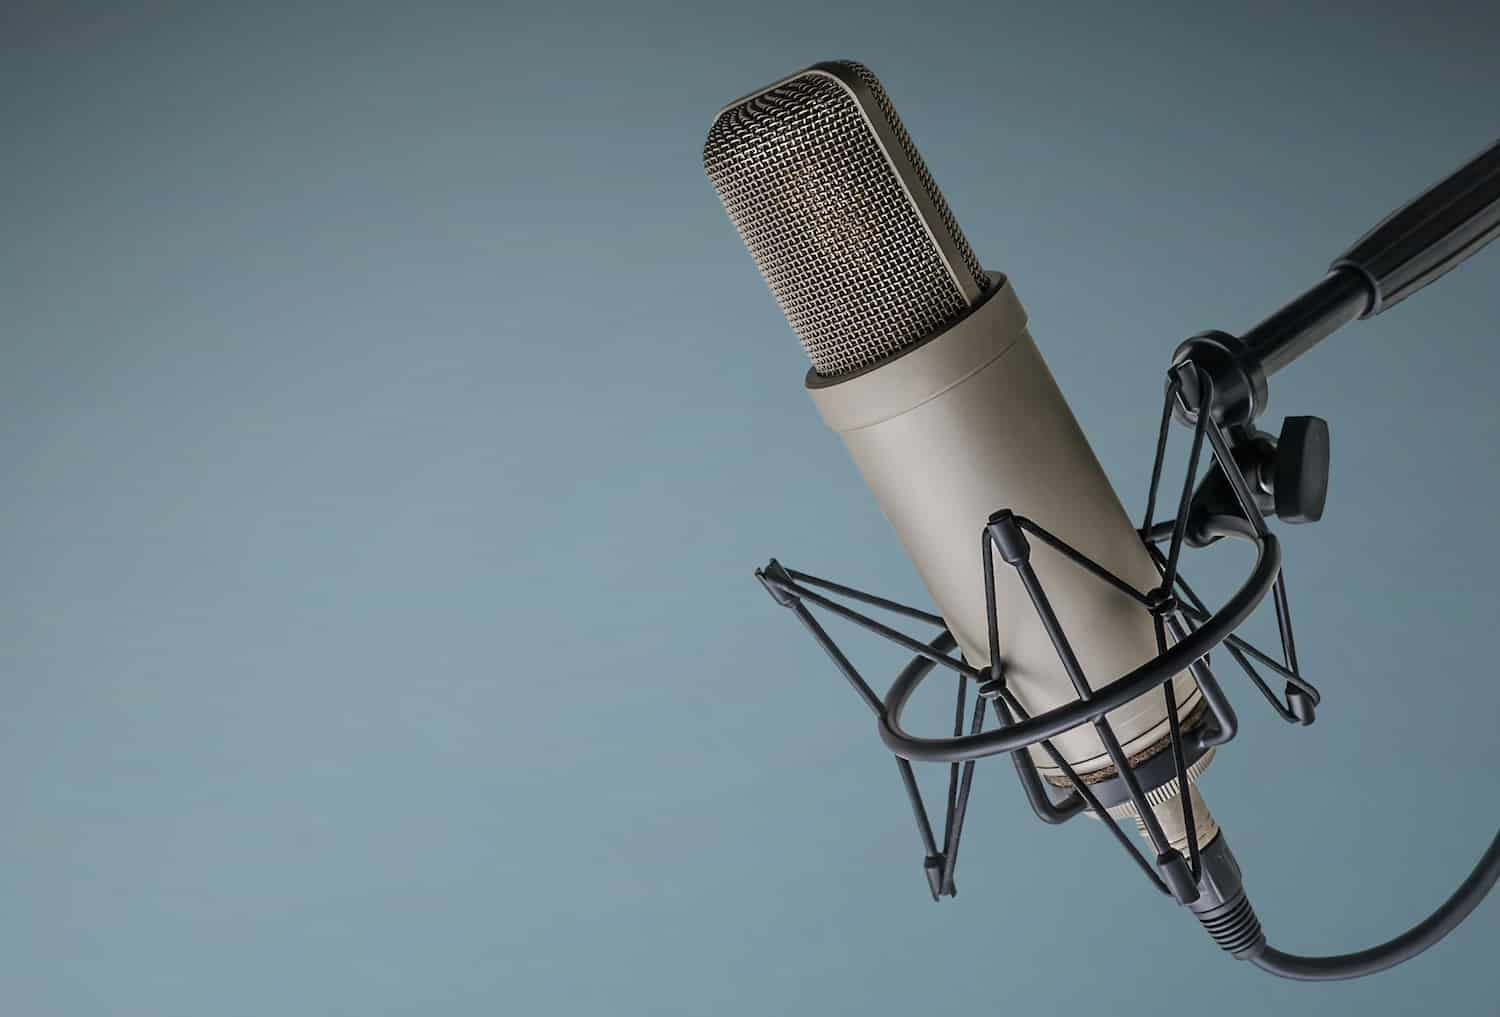 professional microphone for podcasts